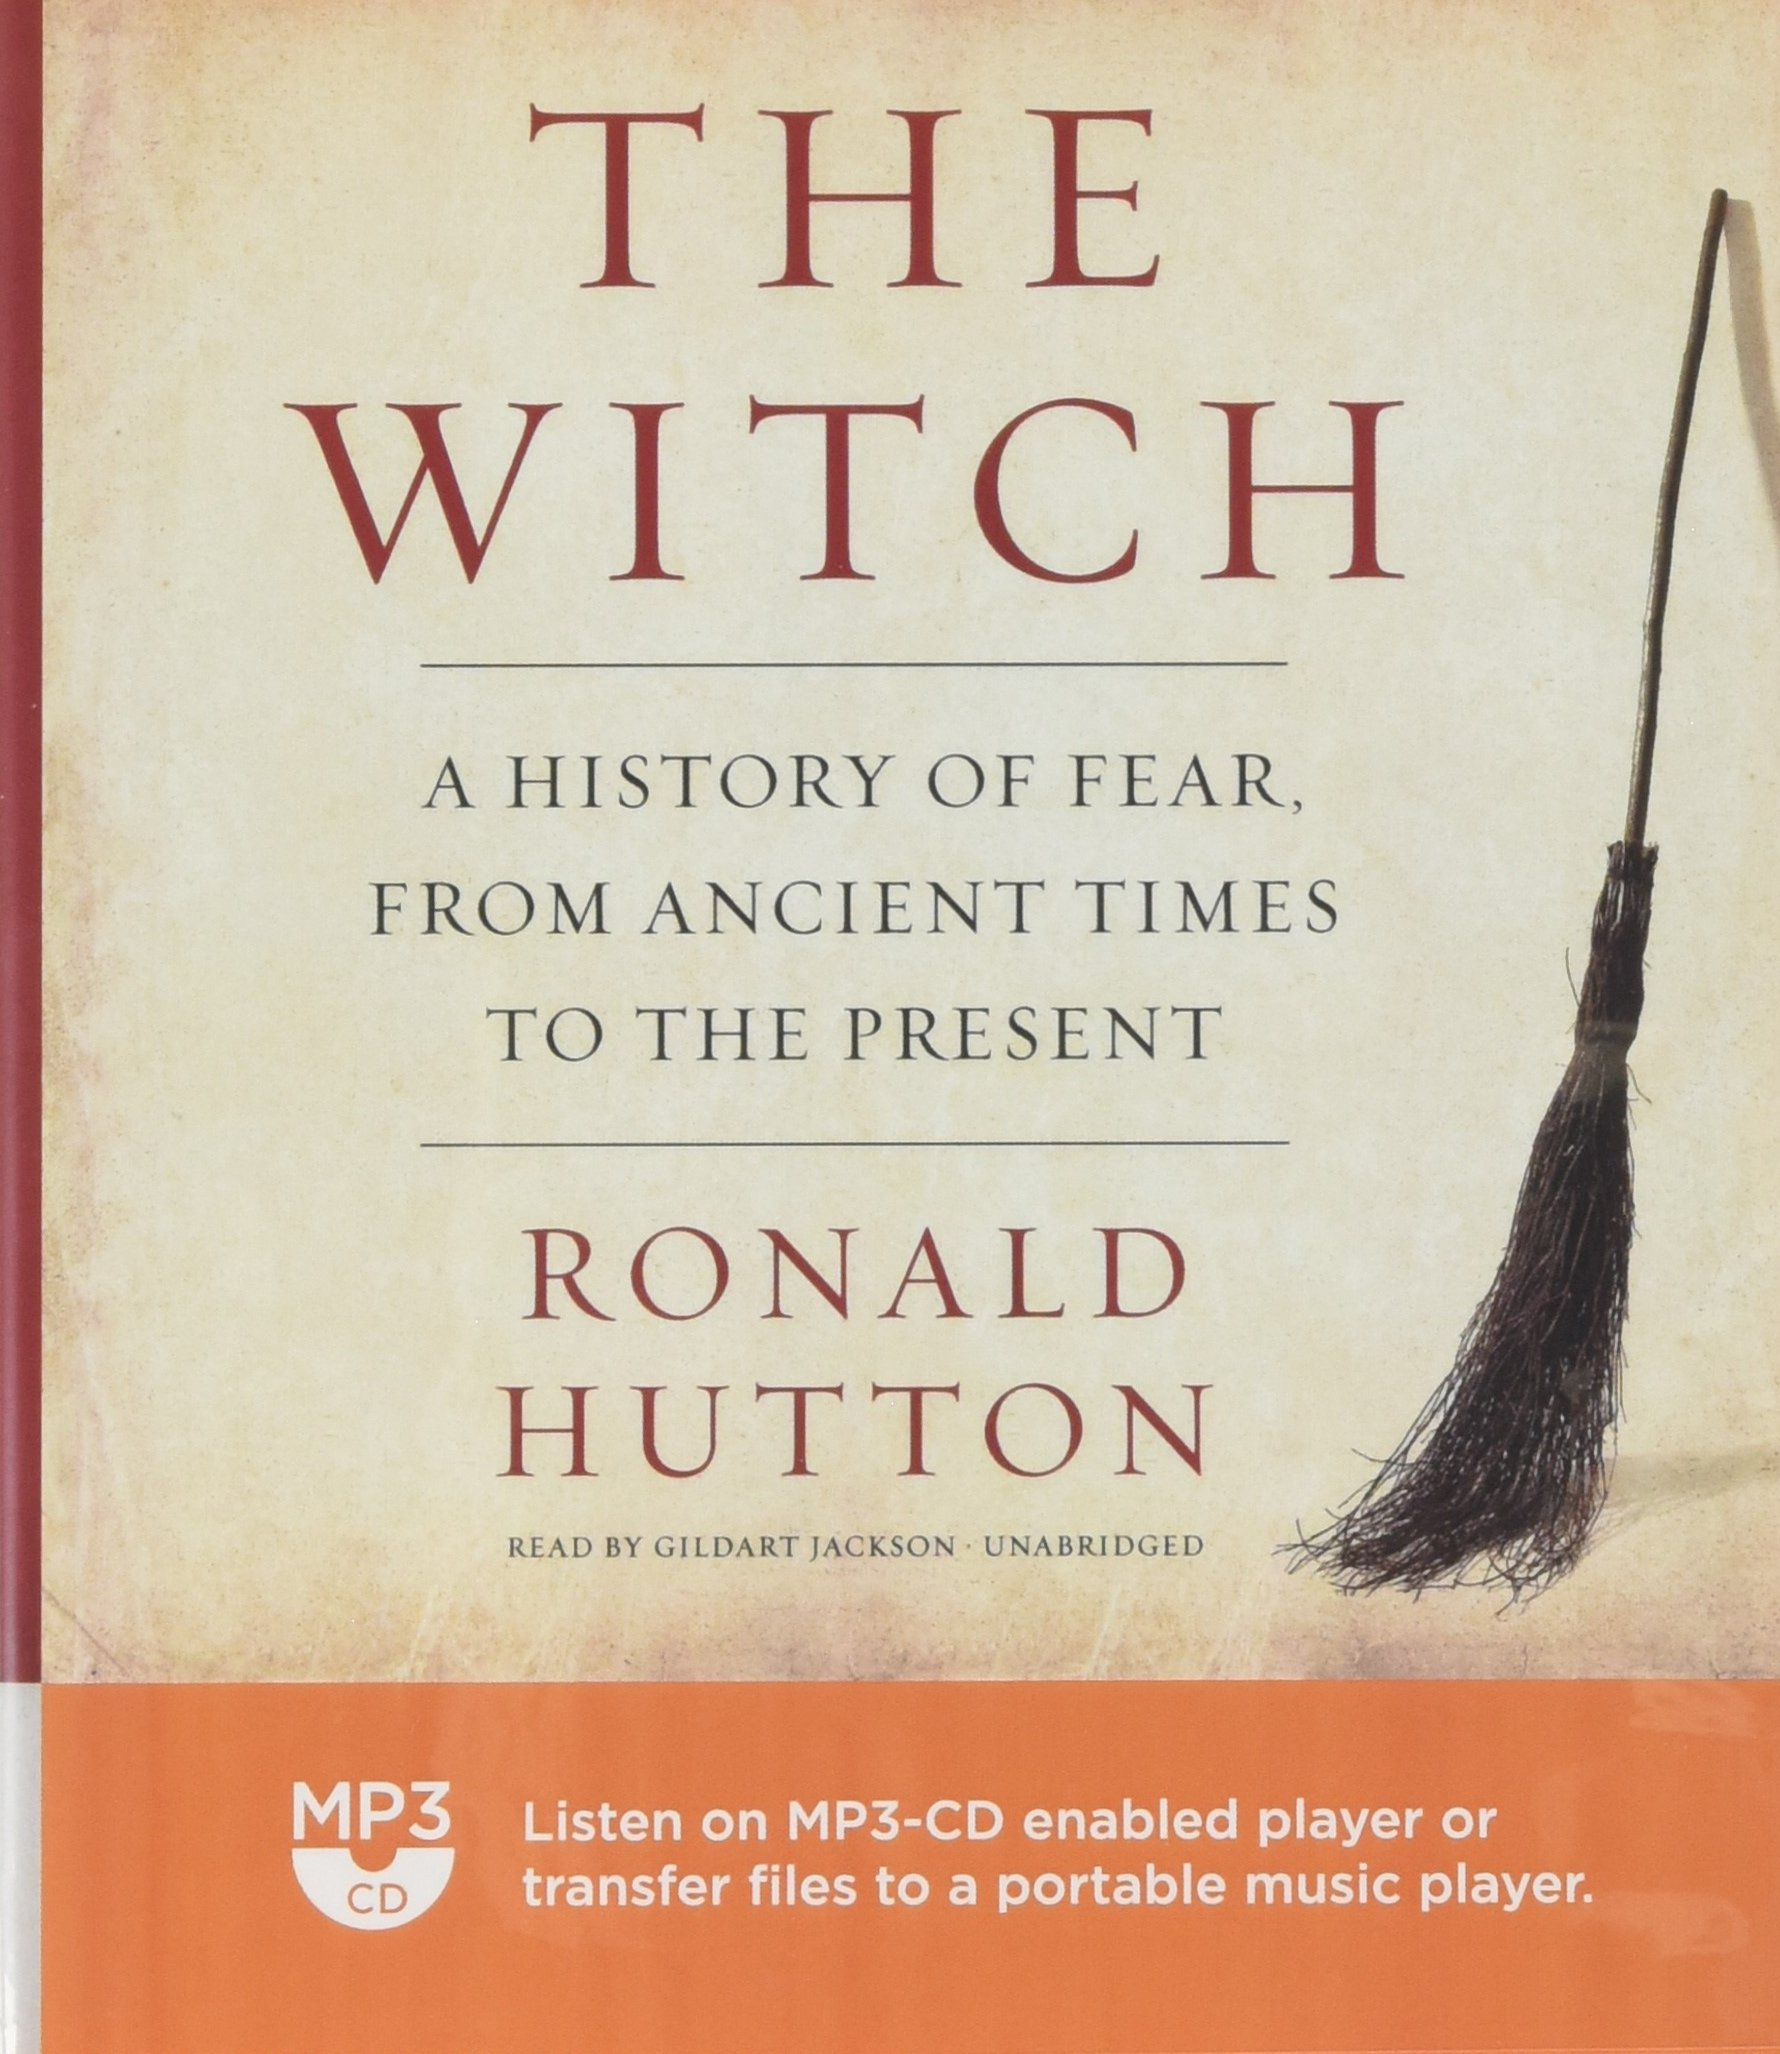 The witch a history of fear from ancient times to the present the witch a history of fear from ancient times to the present ronald hutton 9781538450451 amazon books fandeluxe Image collections